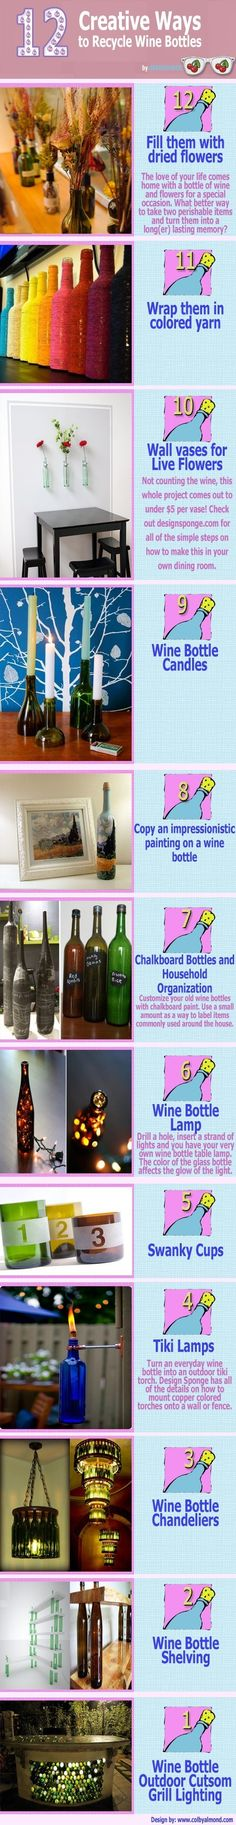 Recycle wine bottles and get creative!  #Decoration #art